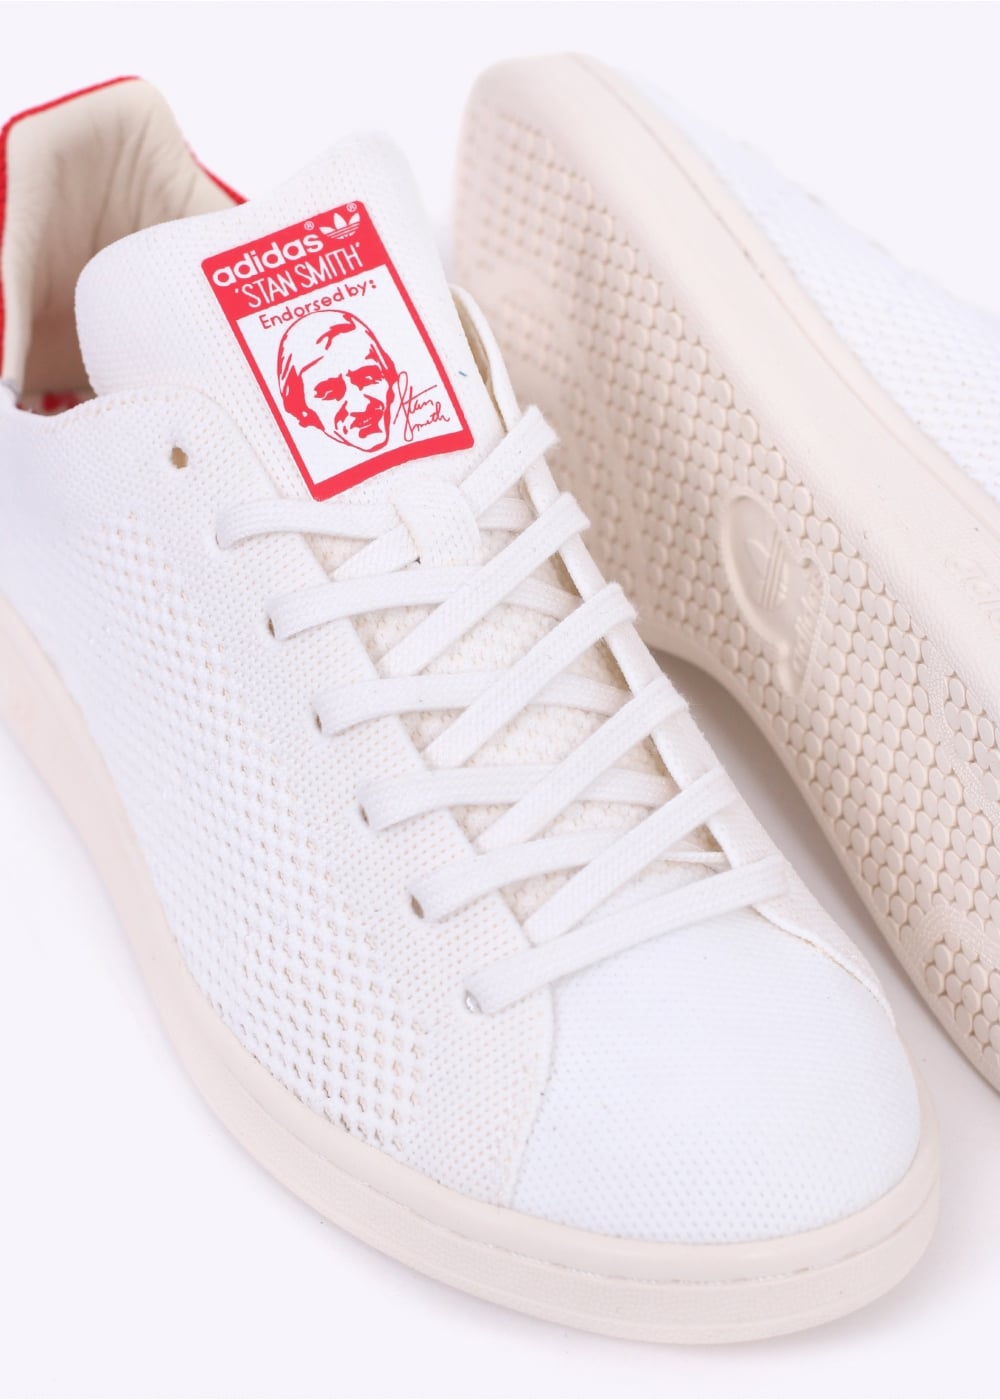 new arrivals bc413 67d0e adidas Originals Footwear Stan Smith OG Primeknit - White / Red